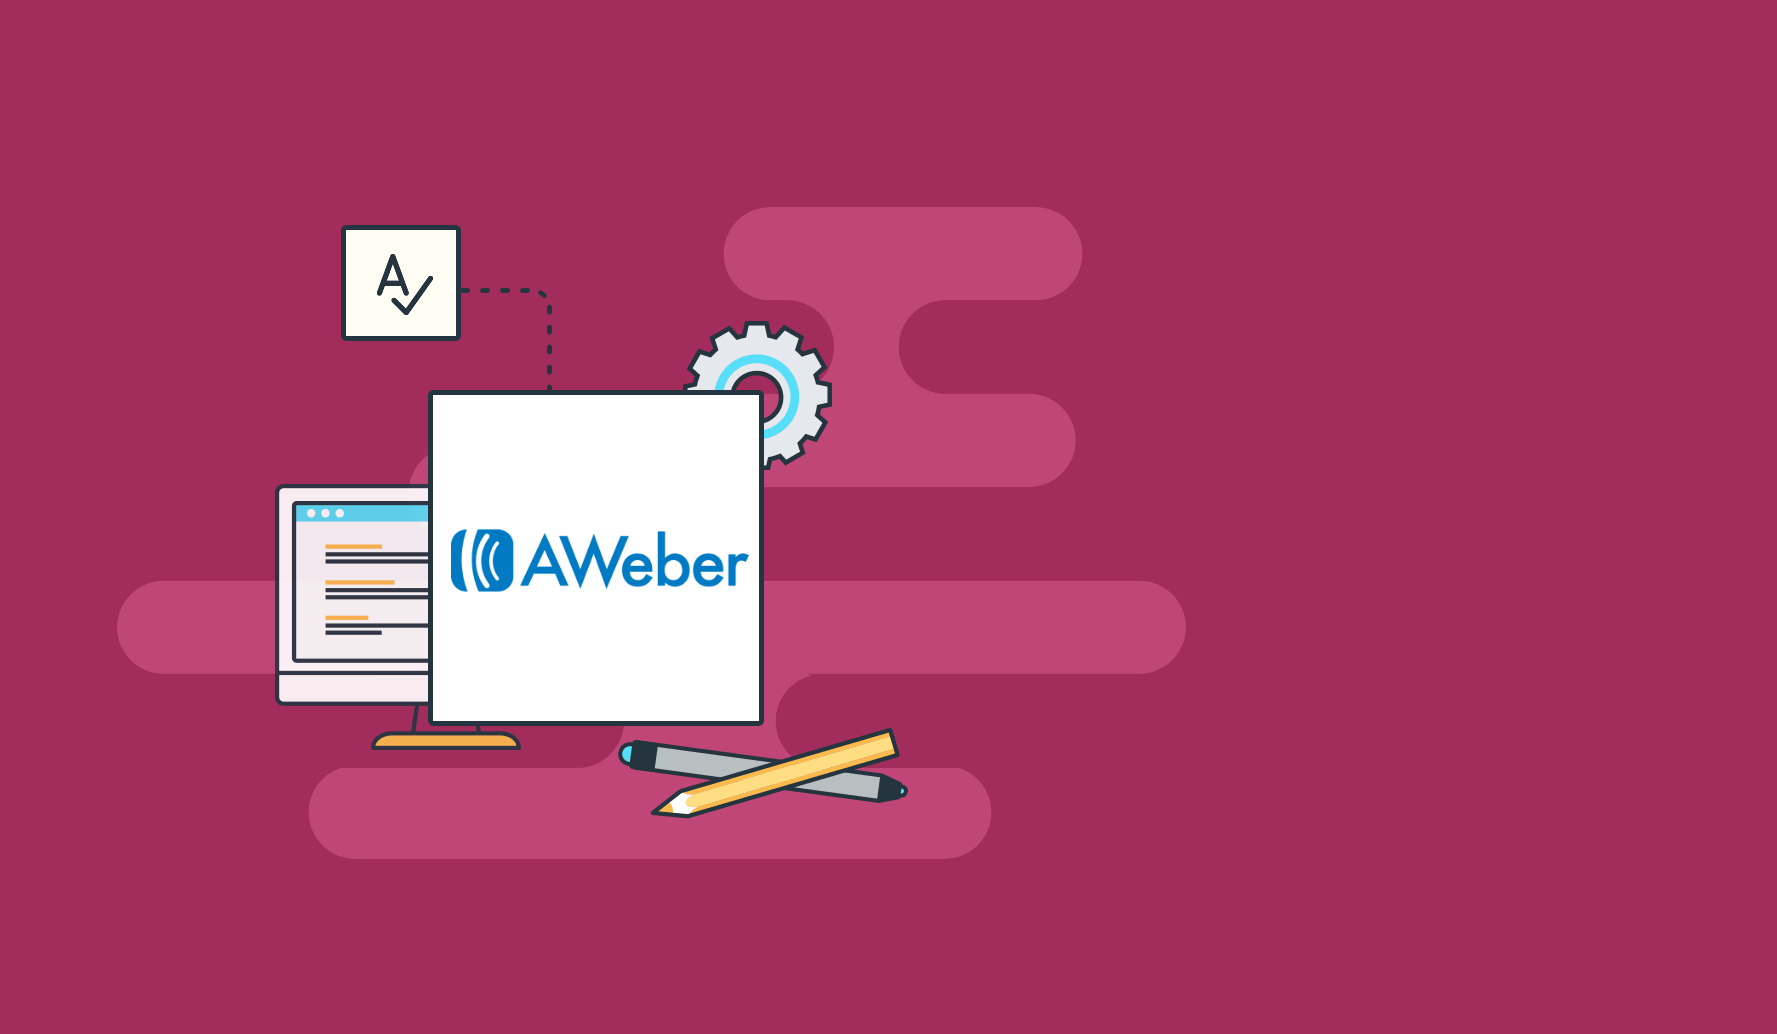 How To Send Downloads From Website On Aweber